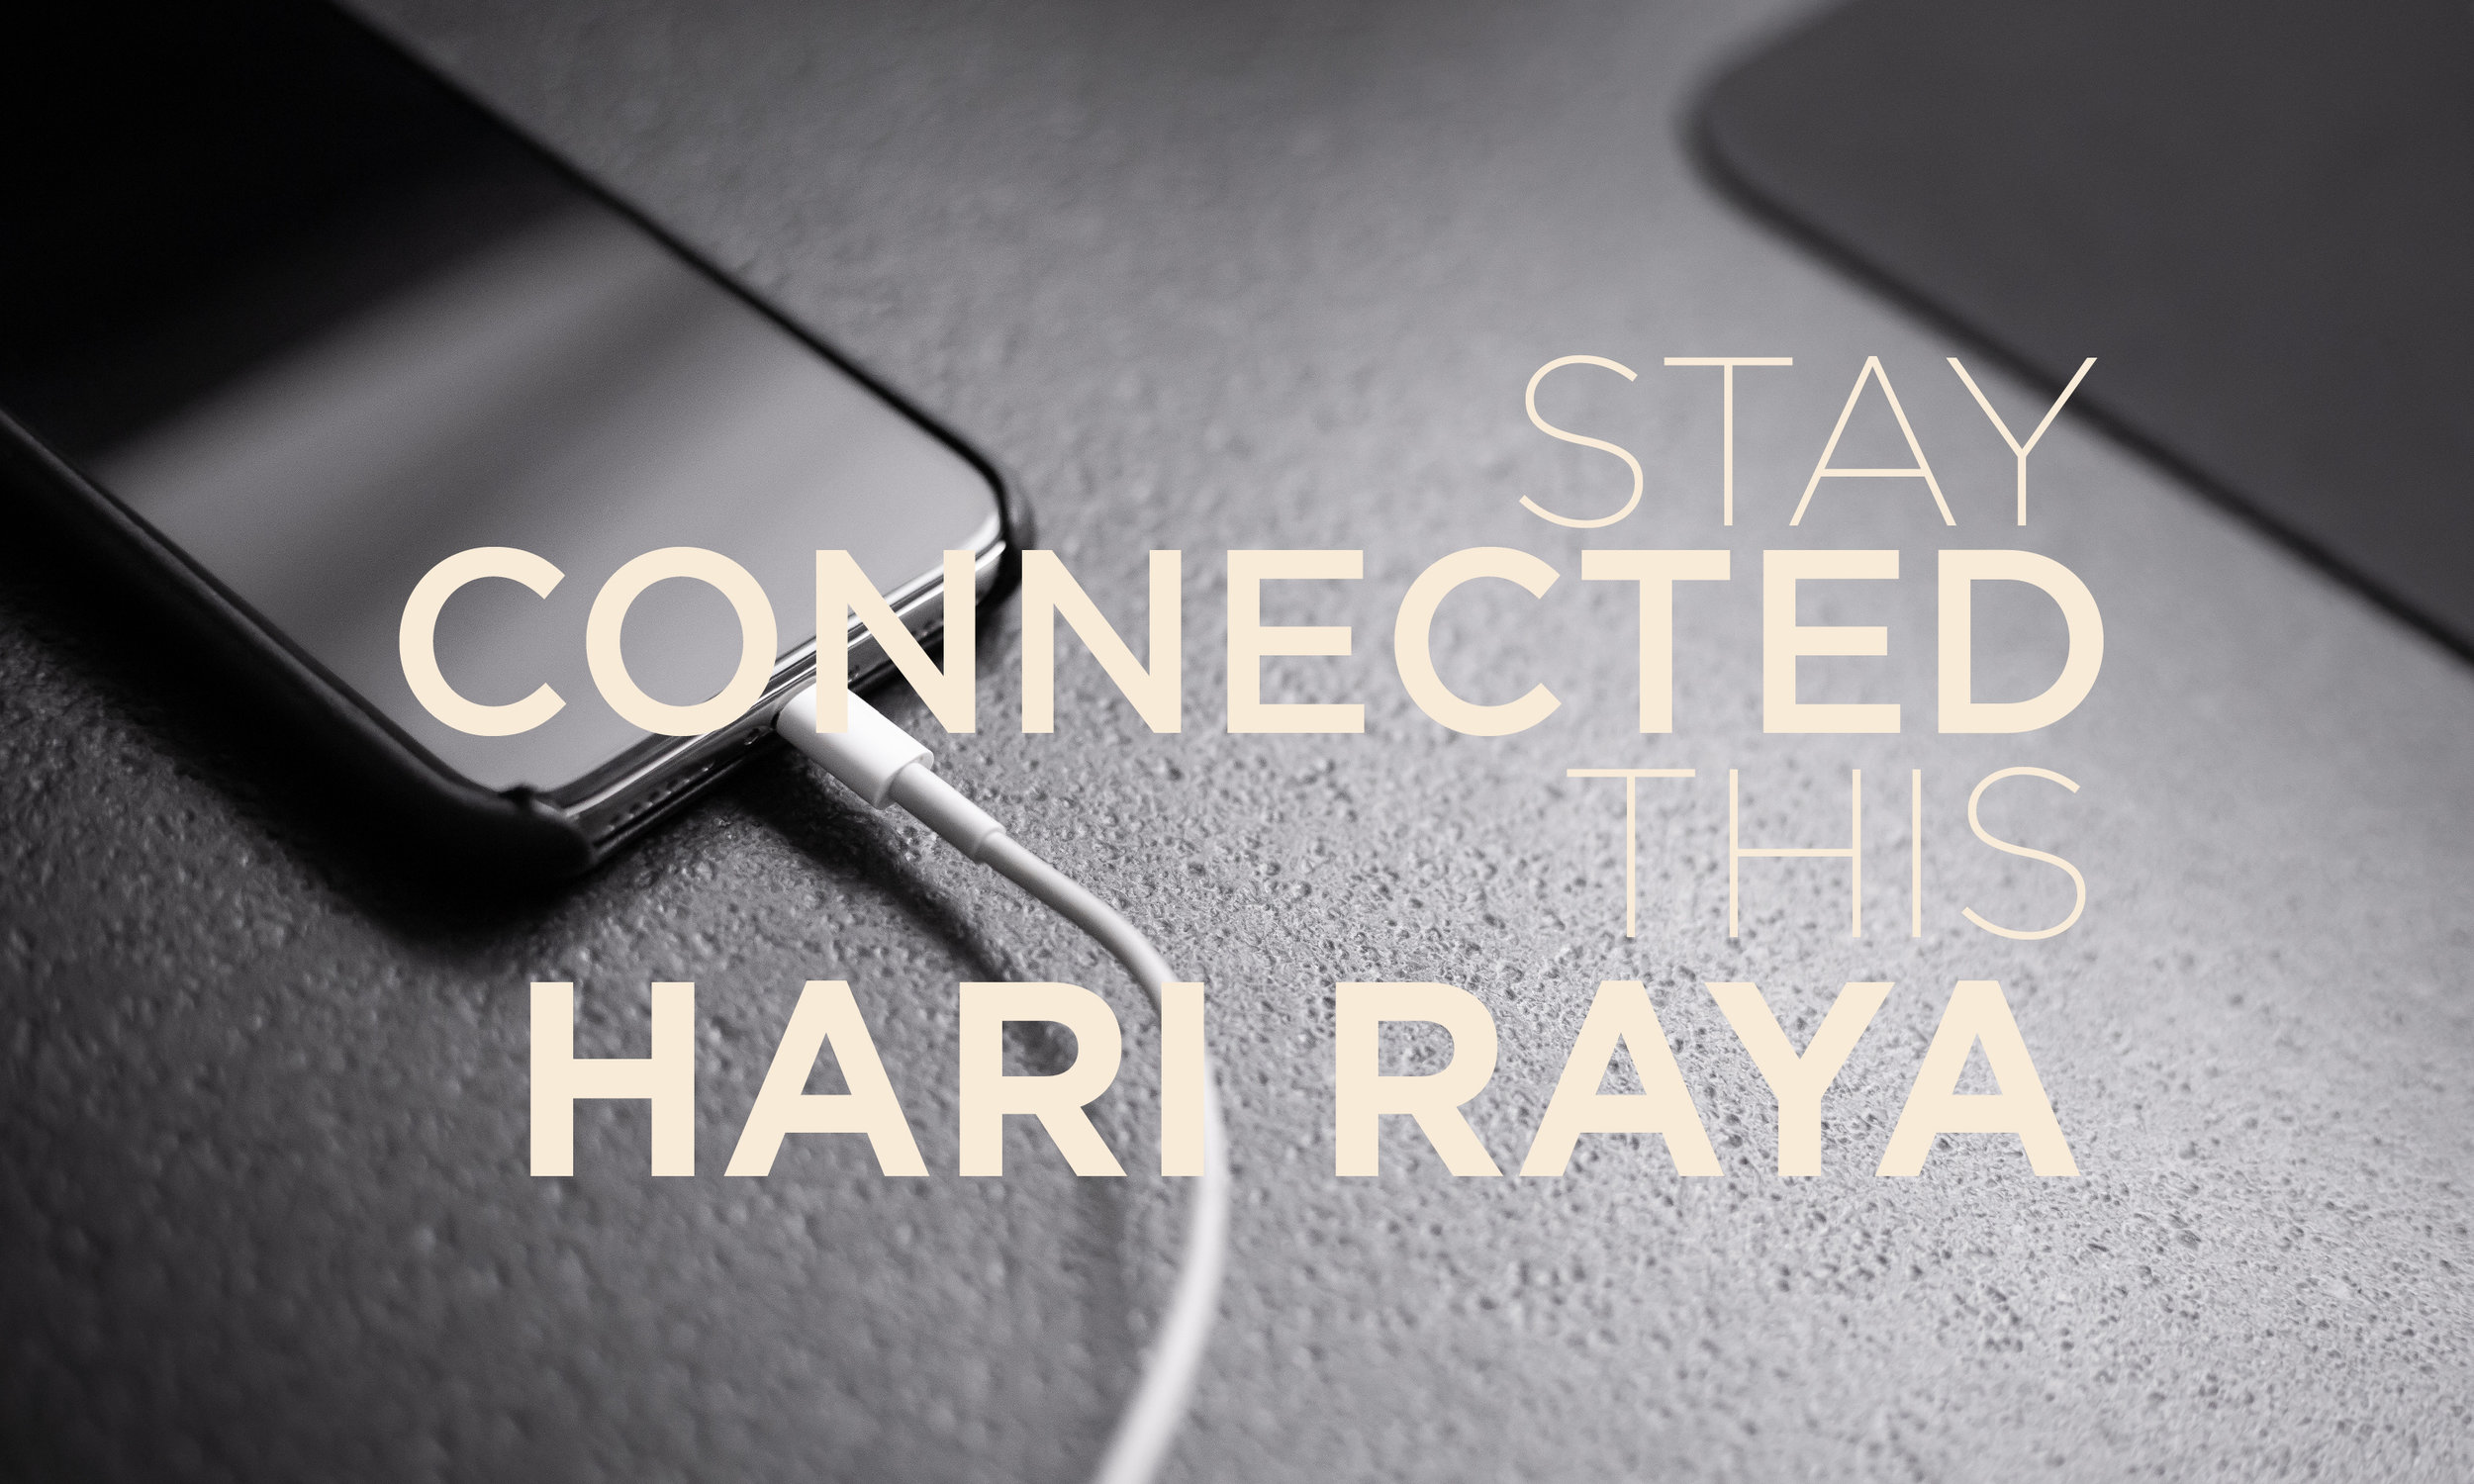 Stay Connected-01-01.jpg